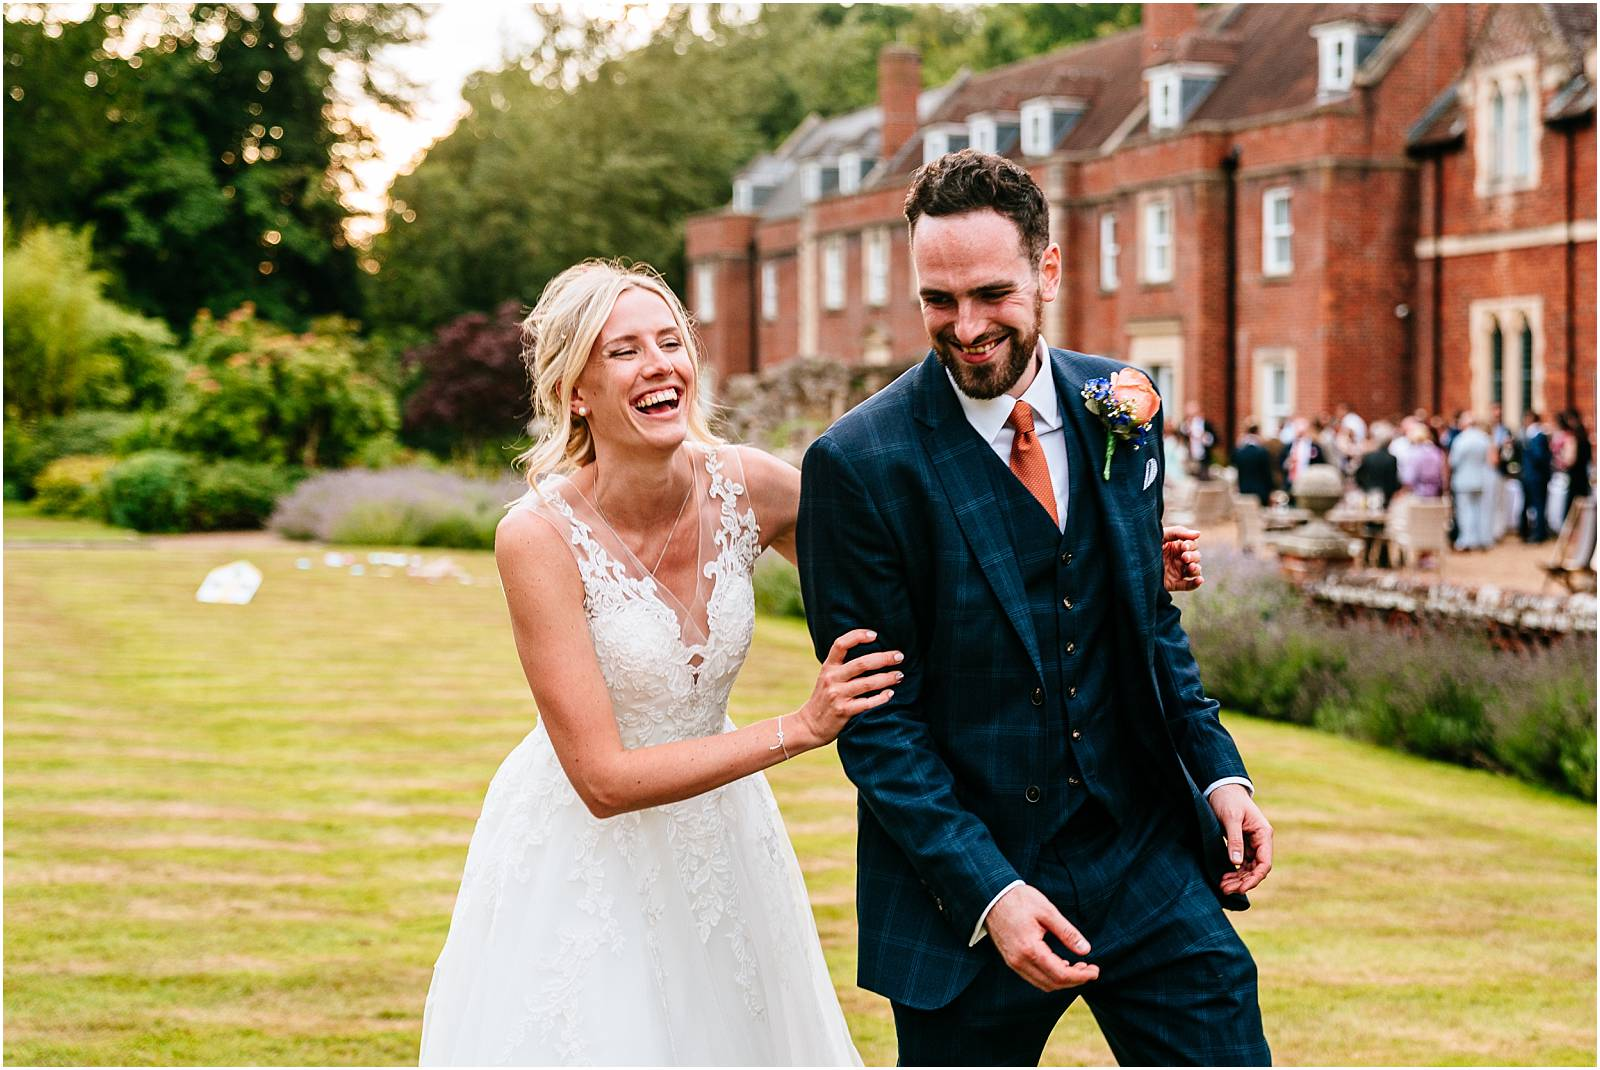 Wotton House Wedding Photography – Jennie & Oliver's Surrey Wedding